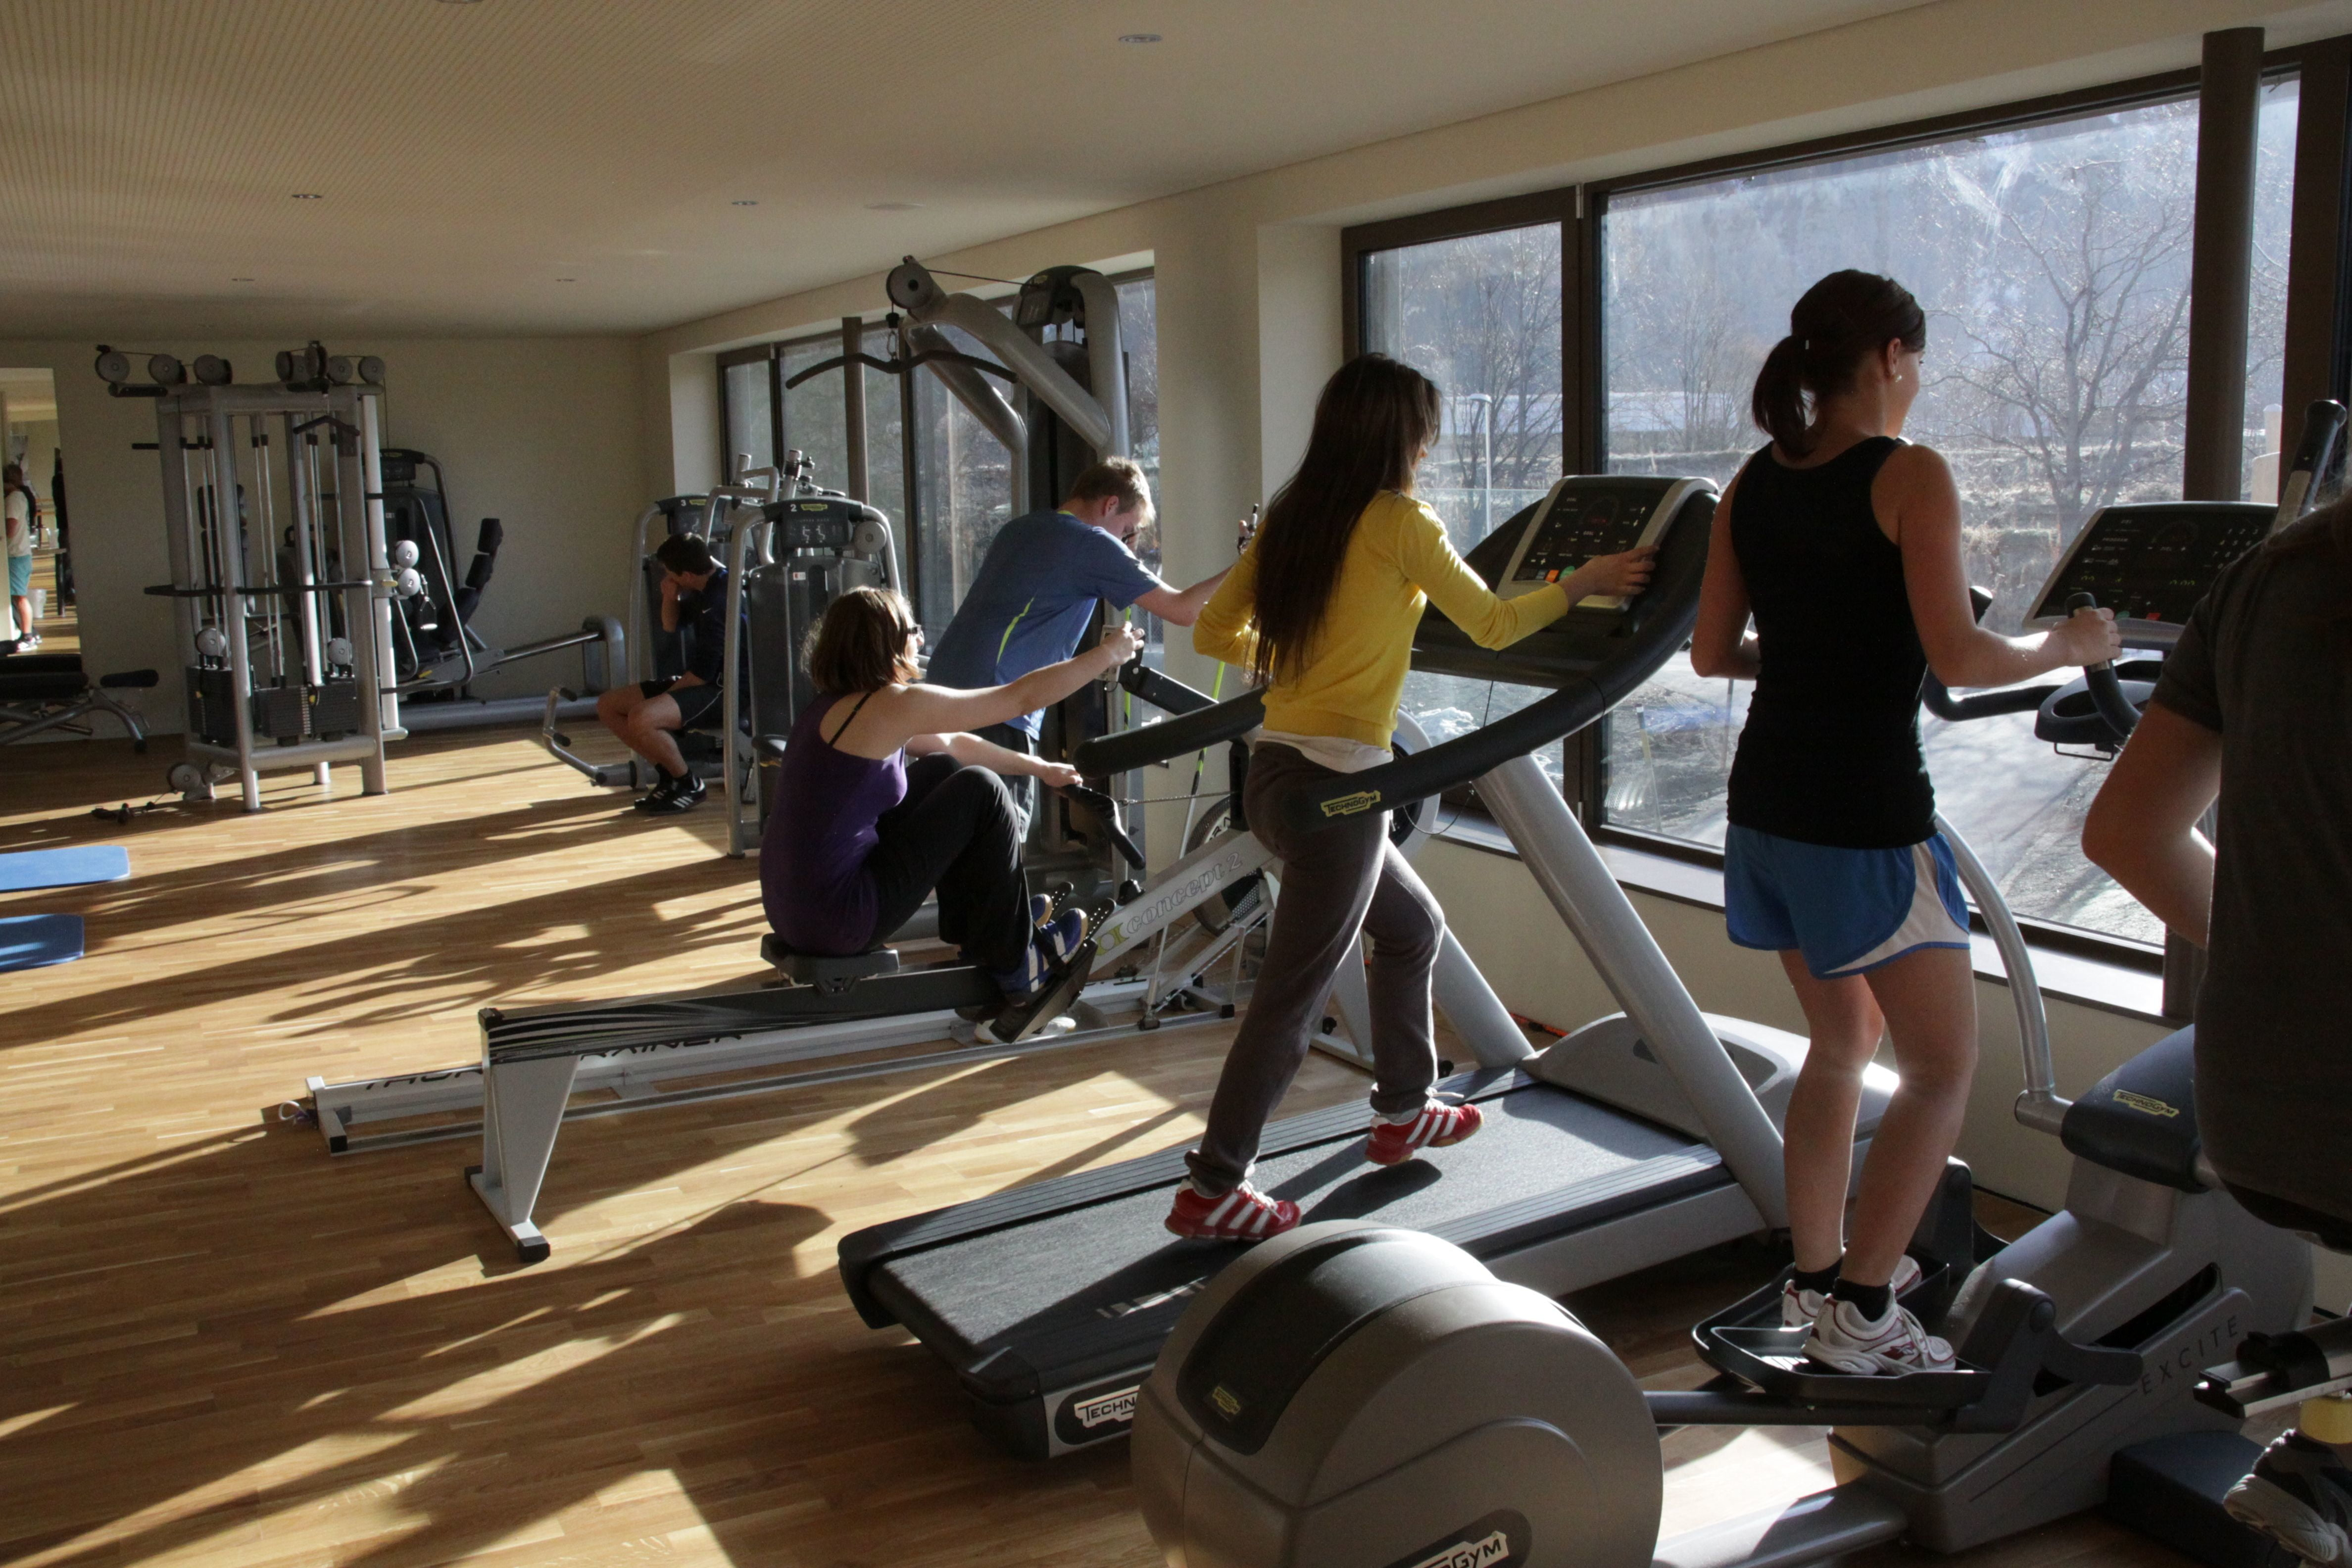 Weight and fitness room at the Promulins Arena, Samedan